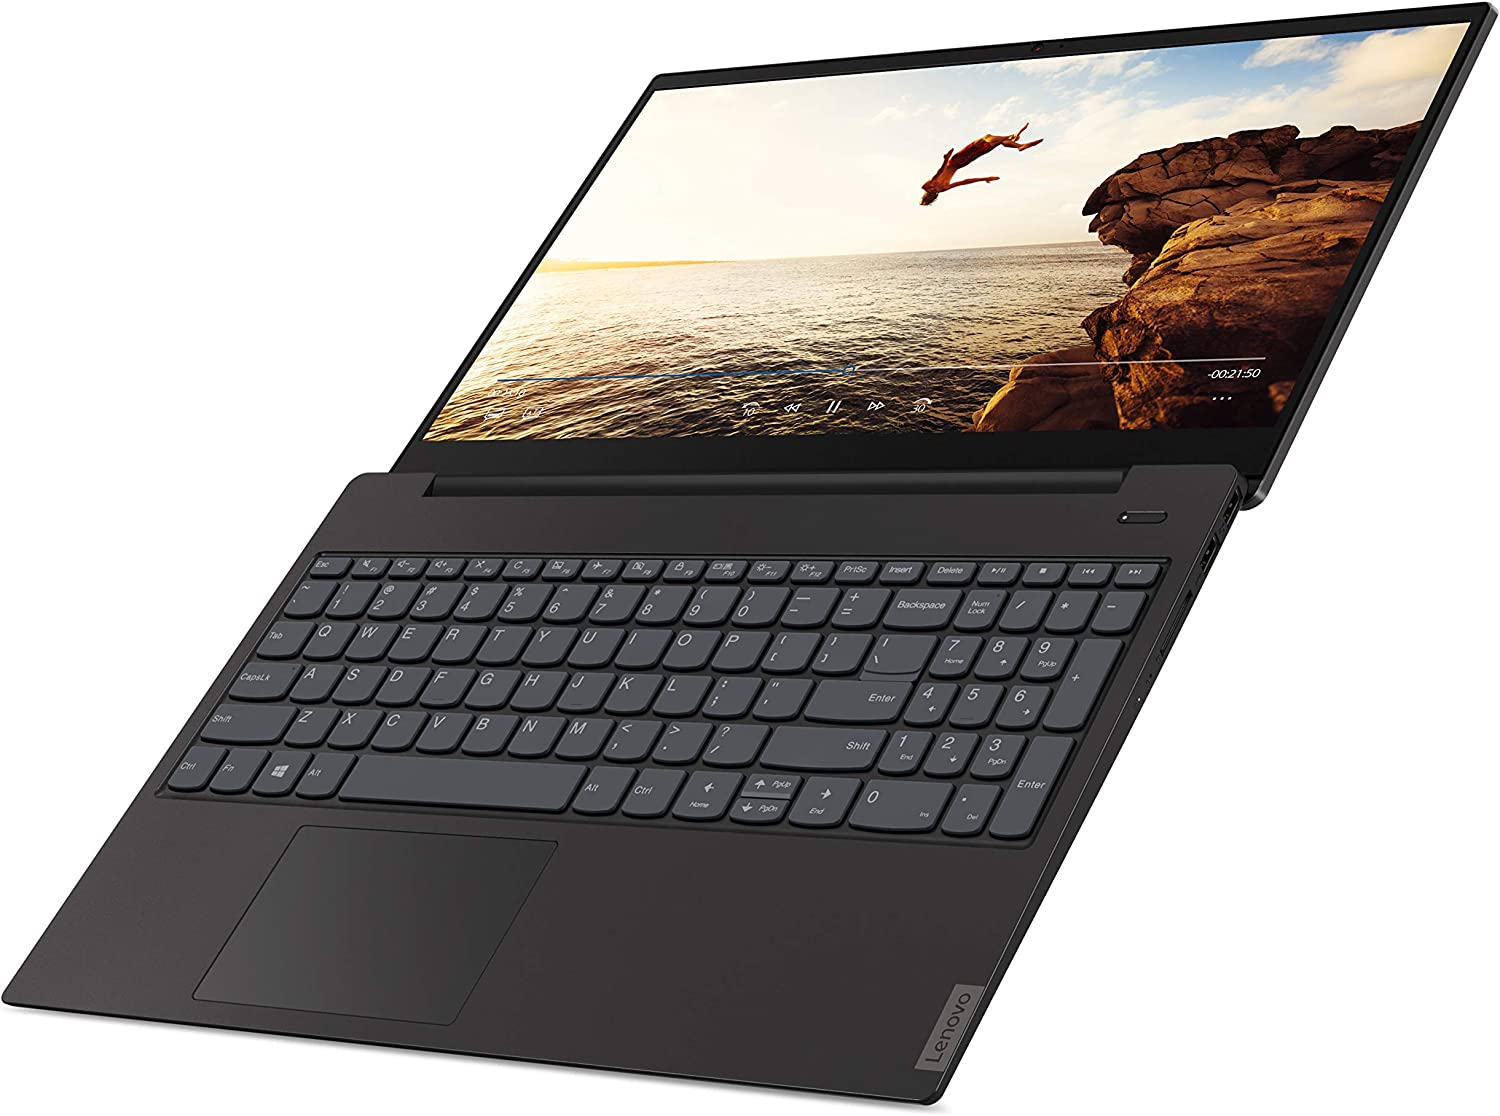 "Lenovo ideaPad S340 15.6"" 8GB Memory, 256GB PCIe SSD Laptop, Core i3-8145U, Dual-Core up to 3.90 GHz, USB-C, DDR4 RAM, Webcam, Keypad, Bluetooth 4.1, Win 10, Black"